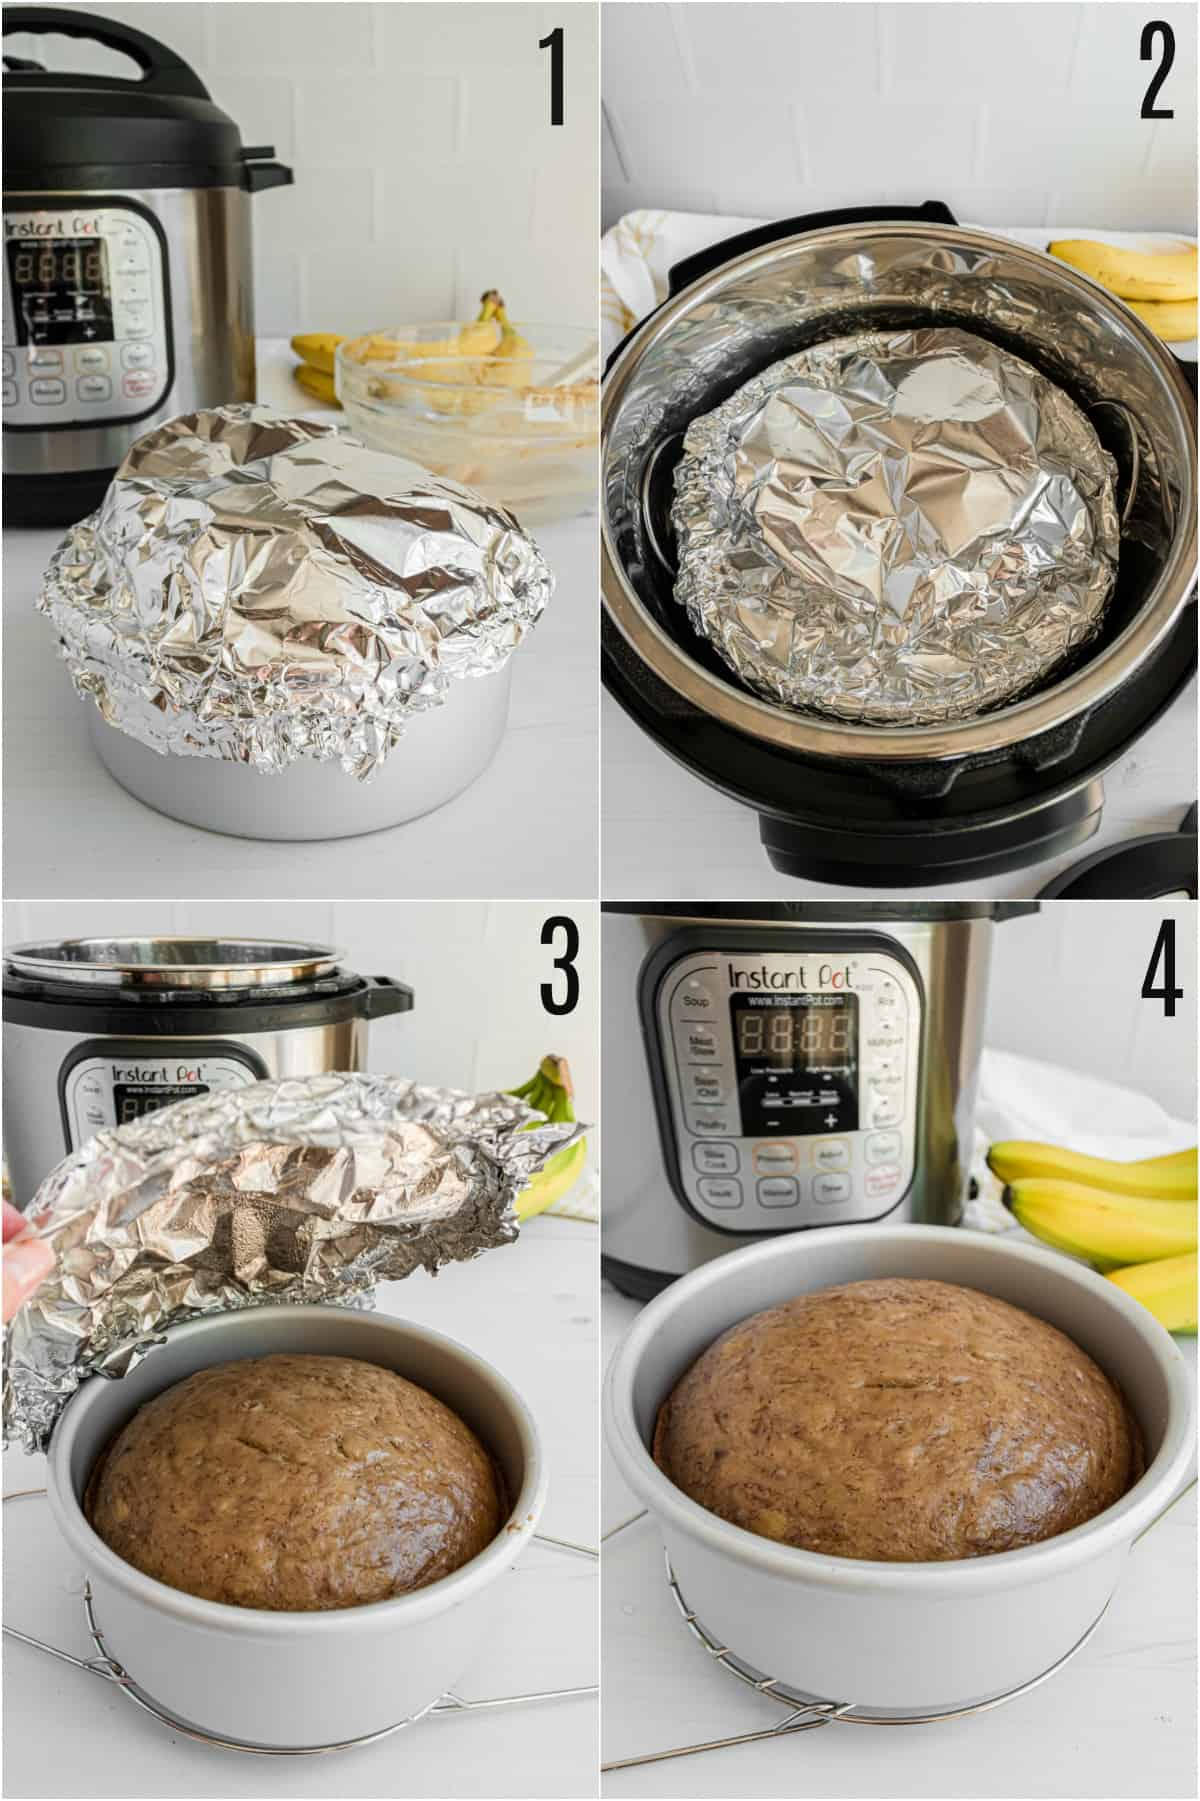 Step by step photos showing how to cover instant pot banana bread with foil.